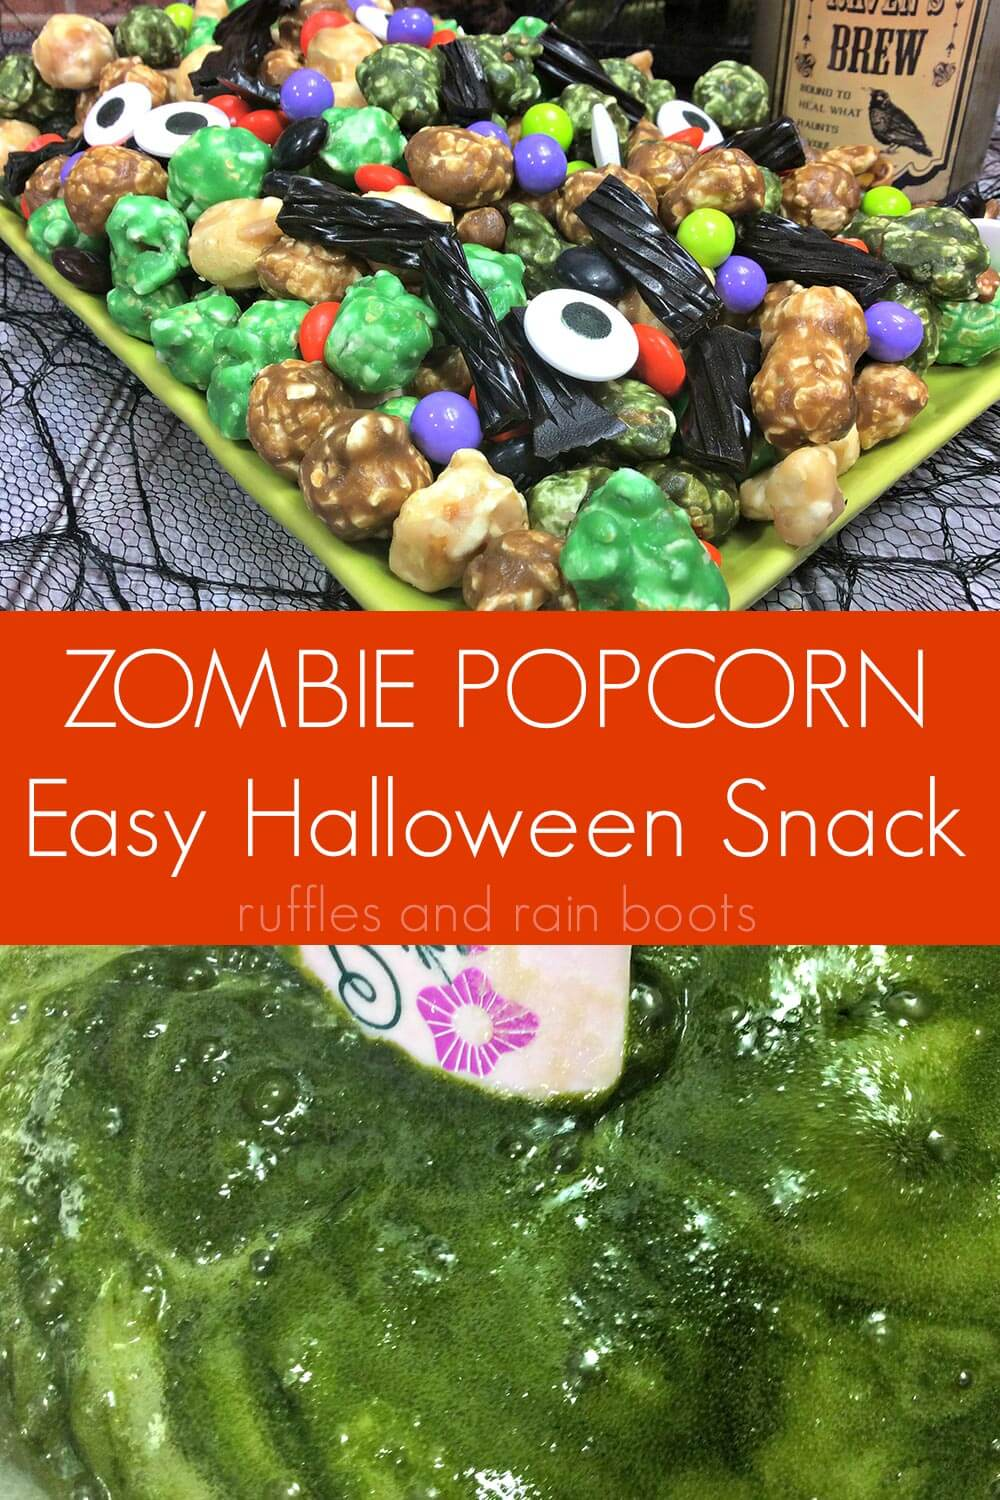 photo collage of Easy Zombie Popcorn for Halloween Snack with text which reads zombie popcorn easy halloween snack